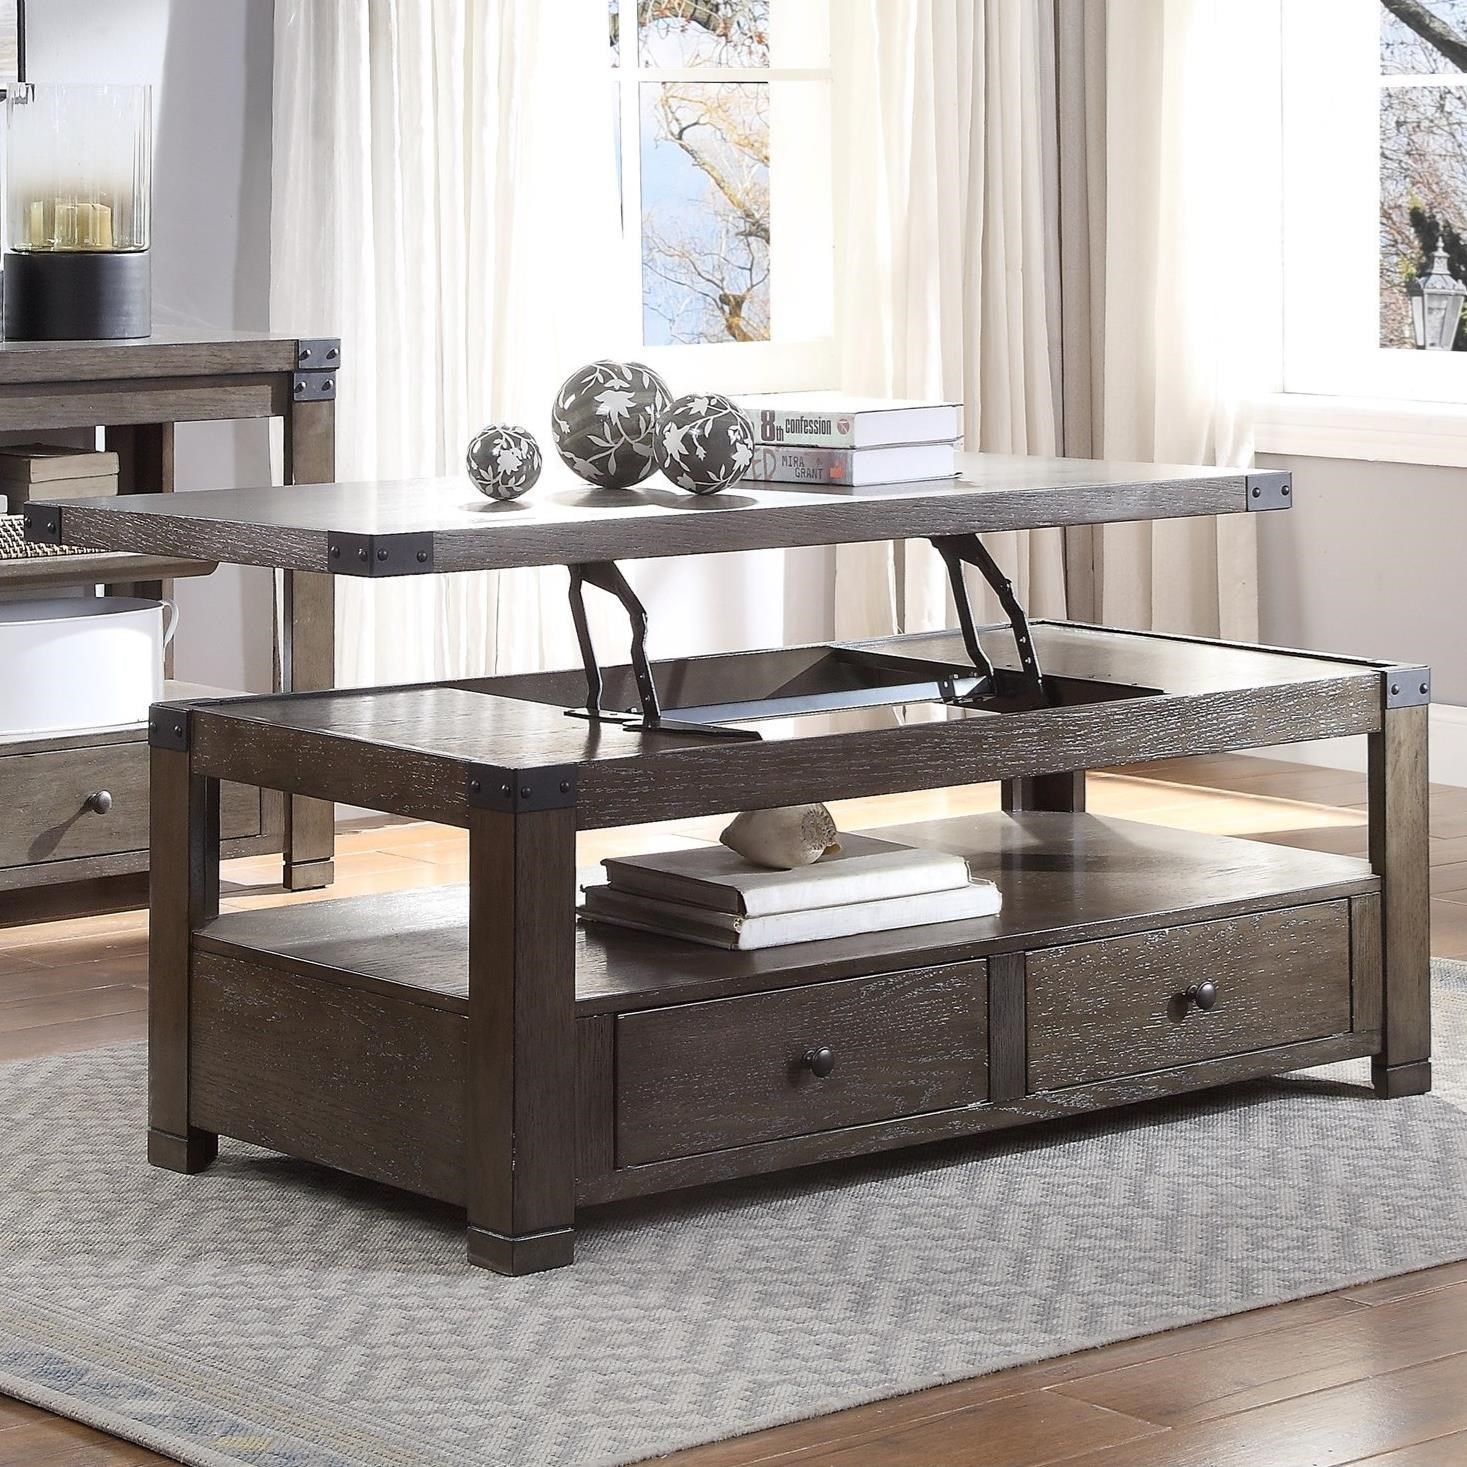 Melville Coffee Table by Acme Furniture at Carolina Direct